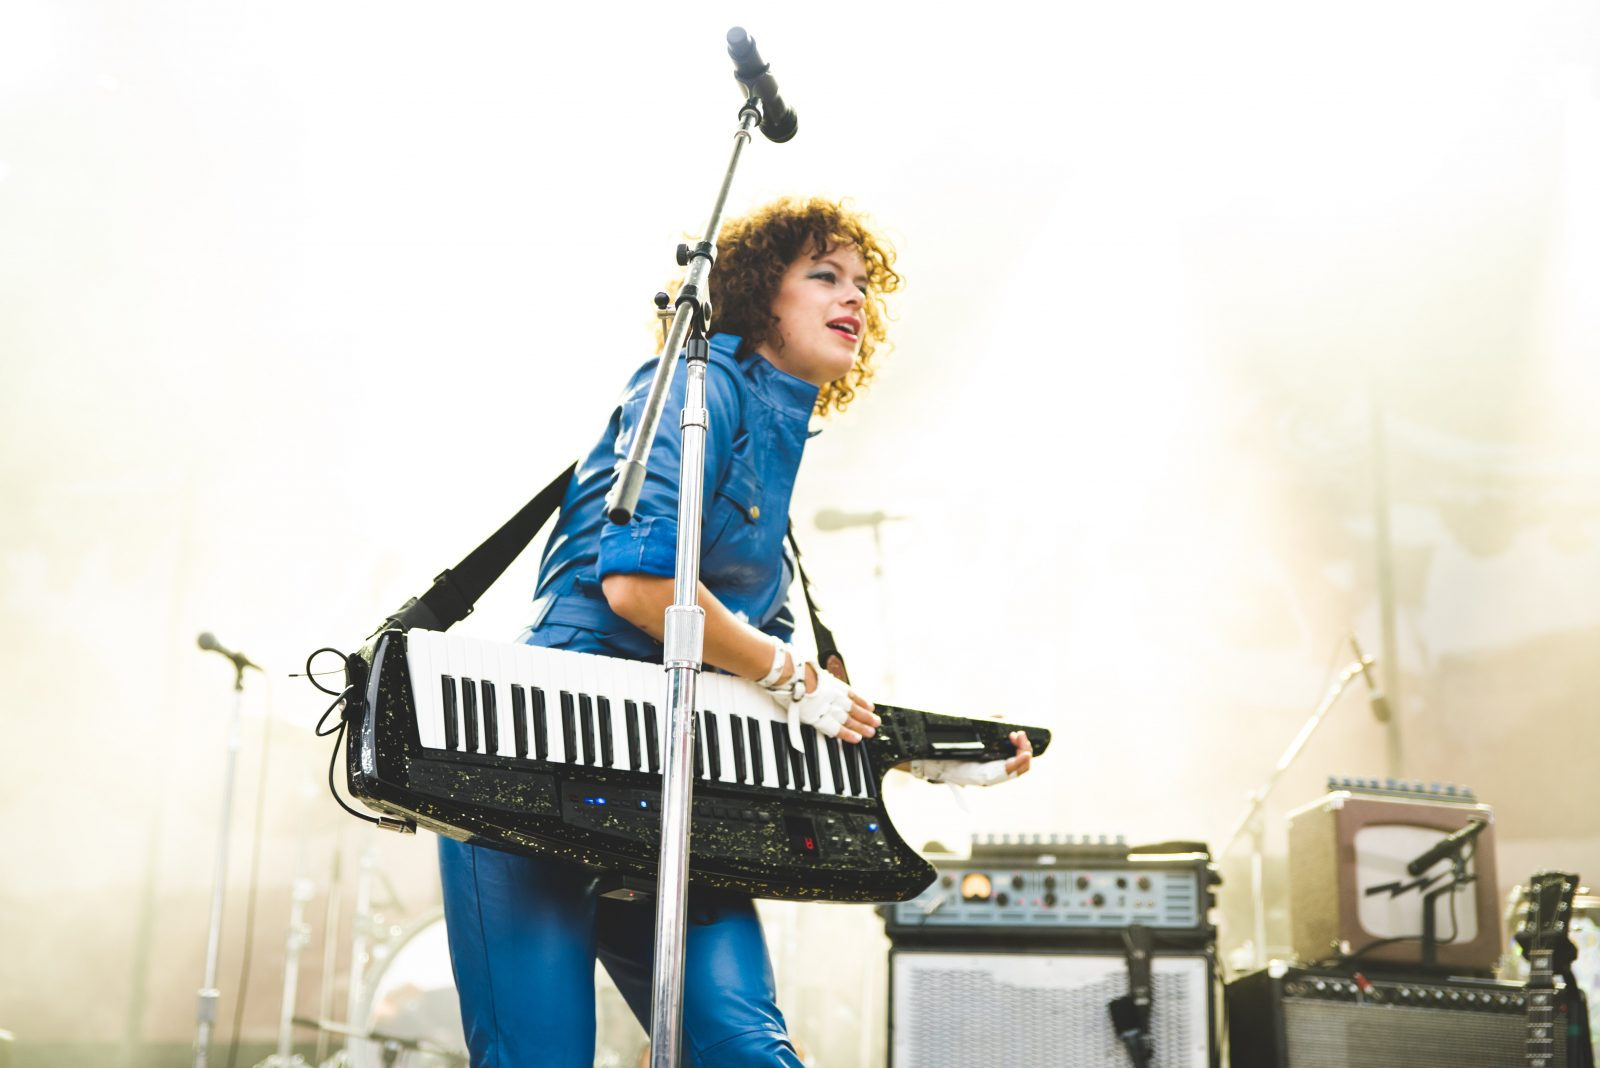 Arcade Fire deliver total knockouts of shows from South to North